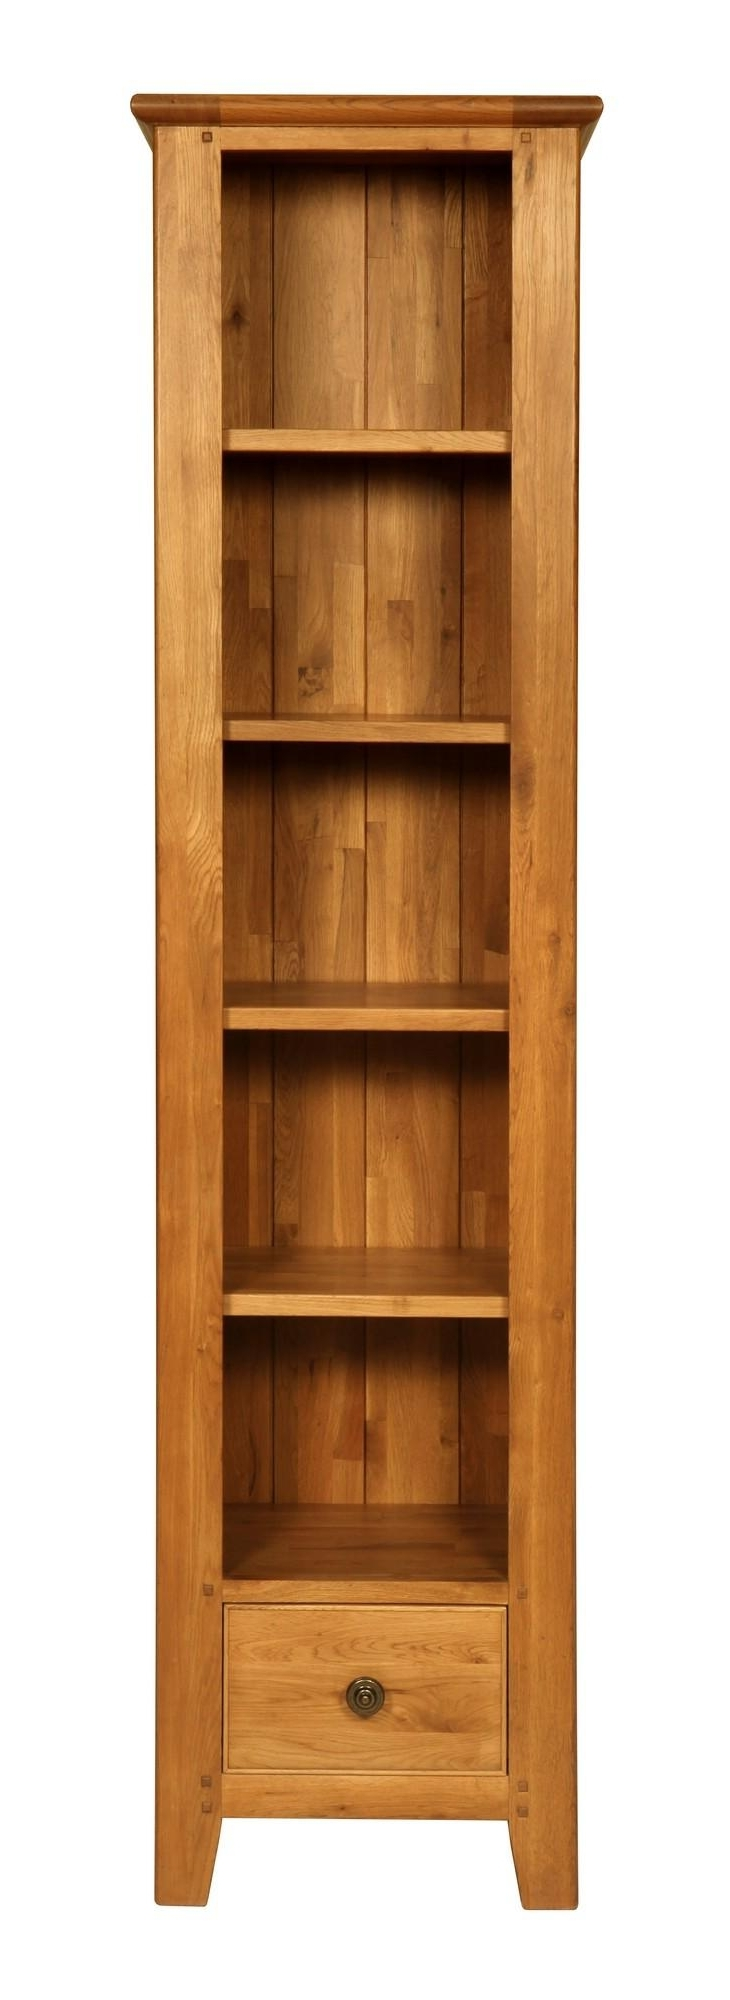 84 Inch Tall Bookcases With Famous Unusual Tallase Photos Design Inch Trabel Me 84 Tall Bookcase (View 5 of 15)